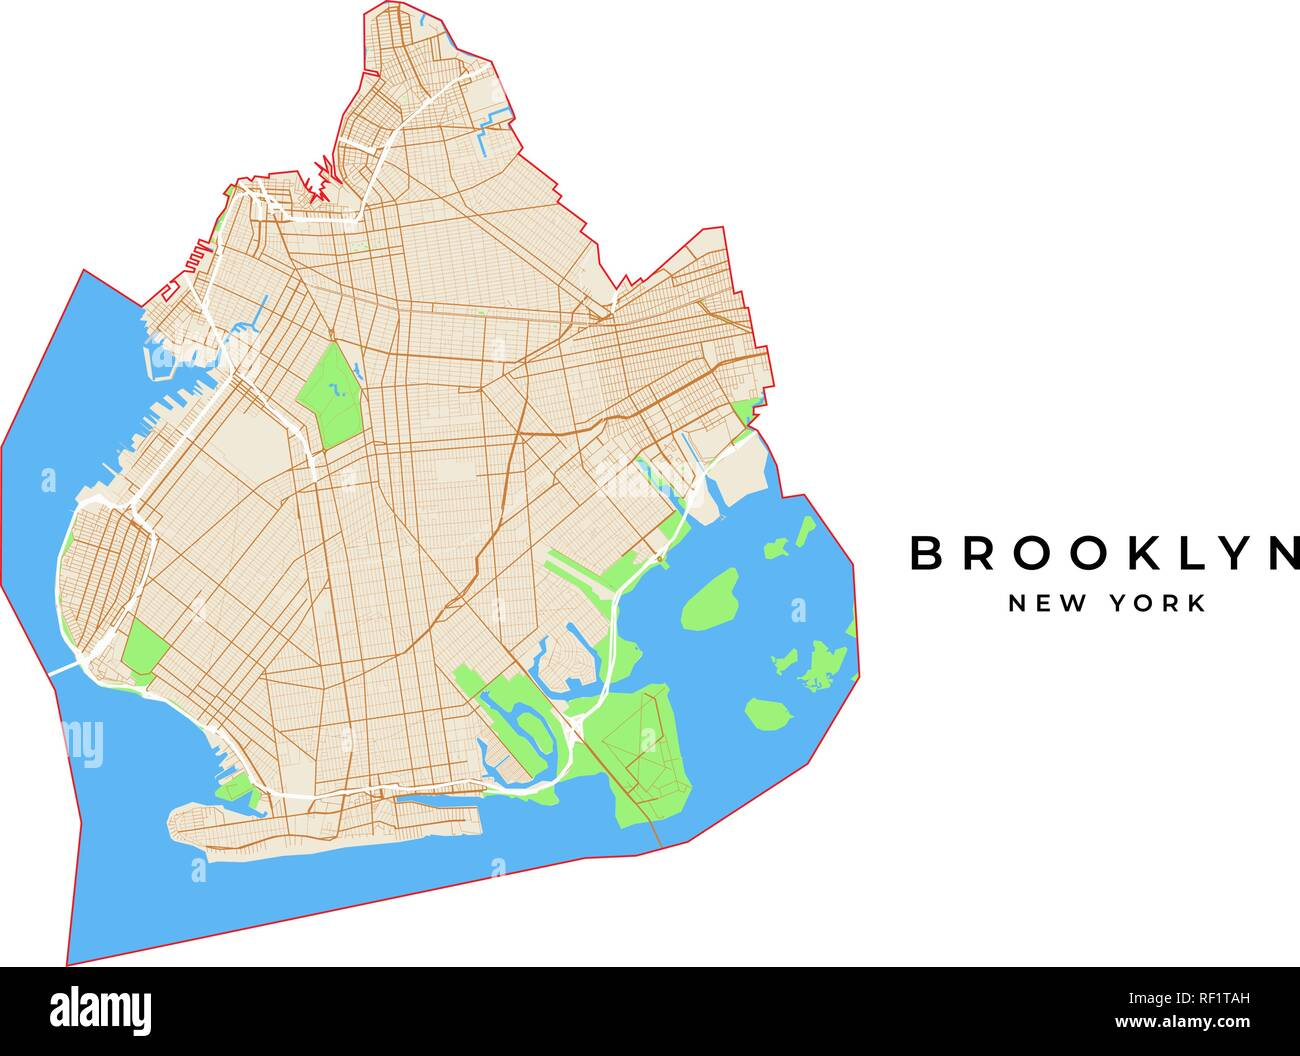 brooklyn new york map usa Vector Map Of Brooklyn New York Usa Various Colors For Streets brooklyn new york map usa